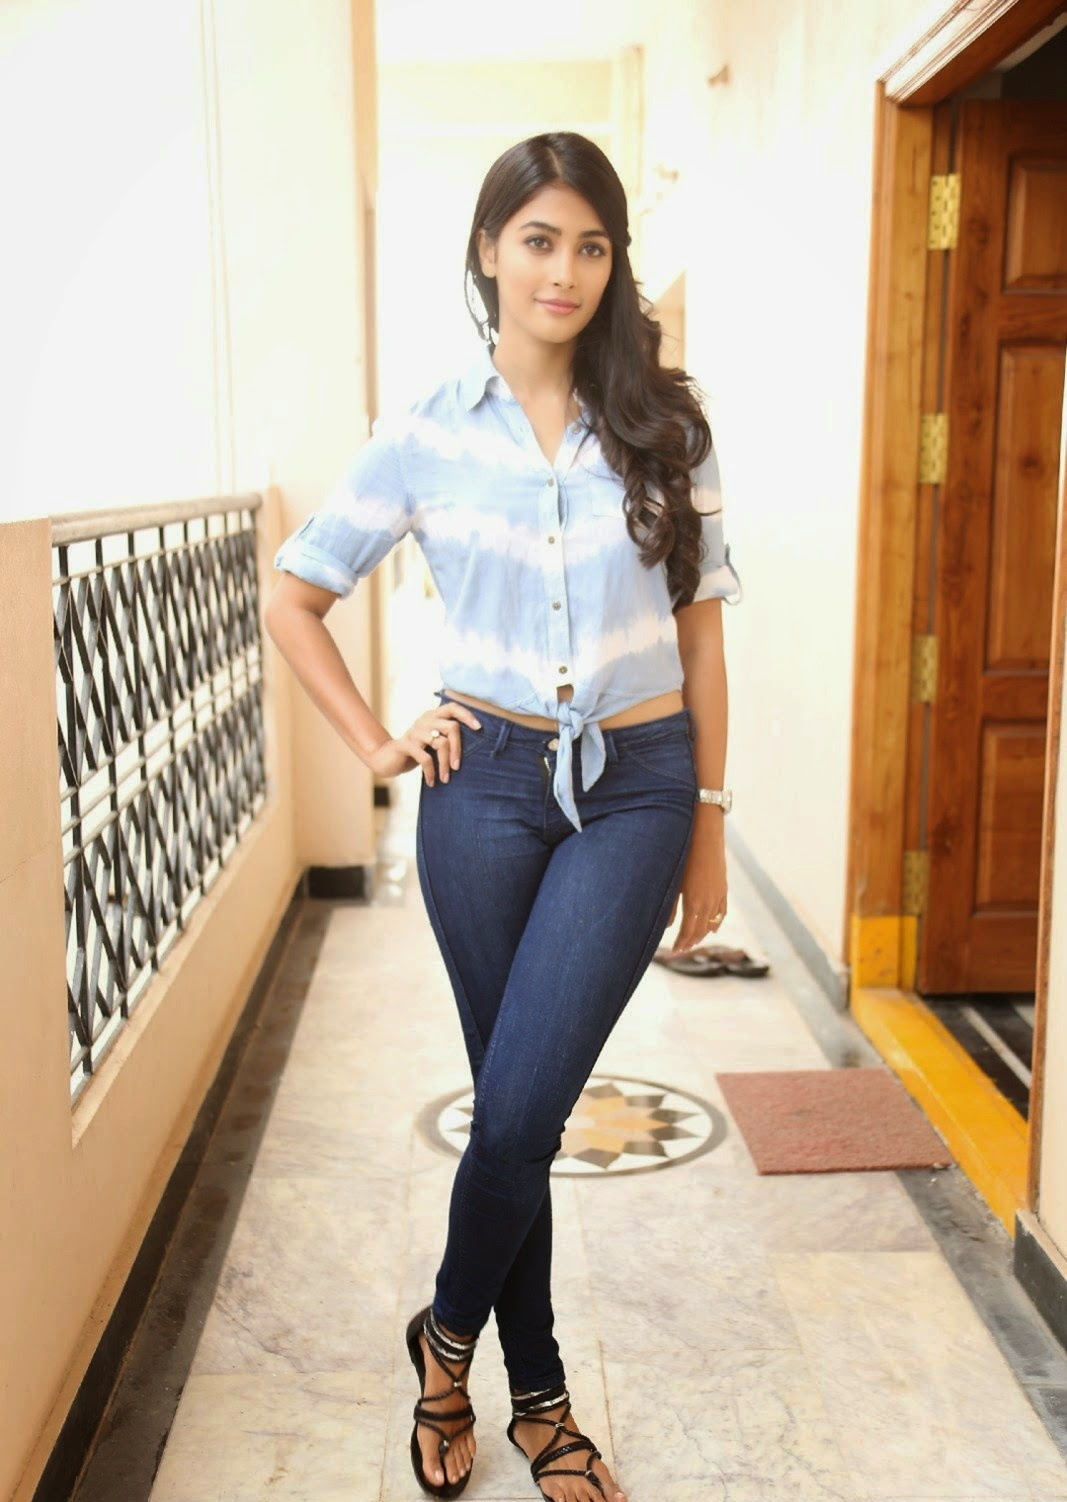 Pooja Hegde in Lovely Denim Jeans and Crop Top Shirt Stunning Beauty HQ Pics must see